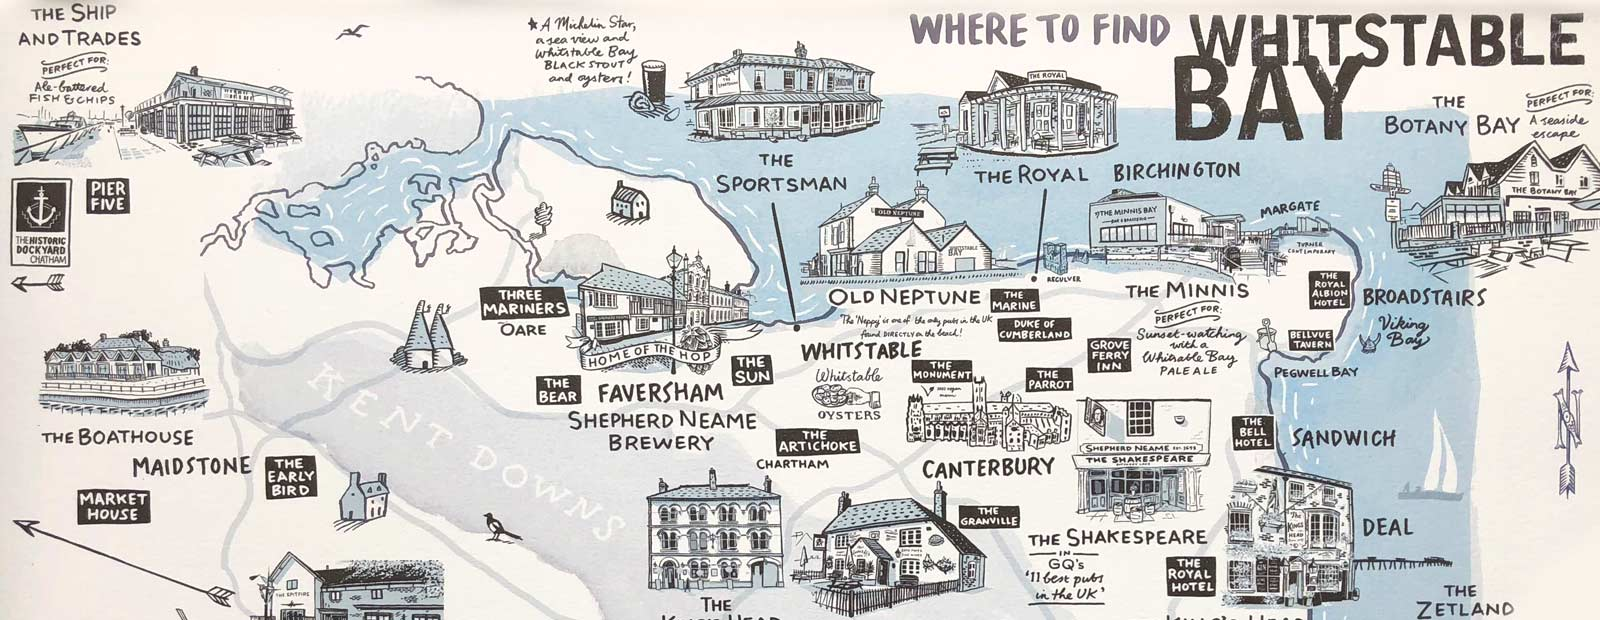 Hero Map of Whitstable Bay